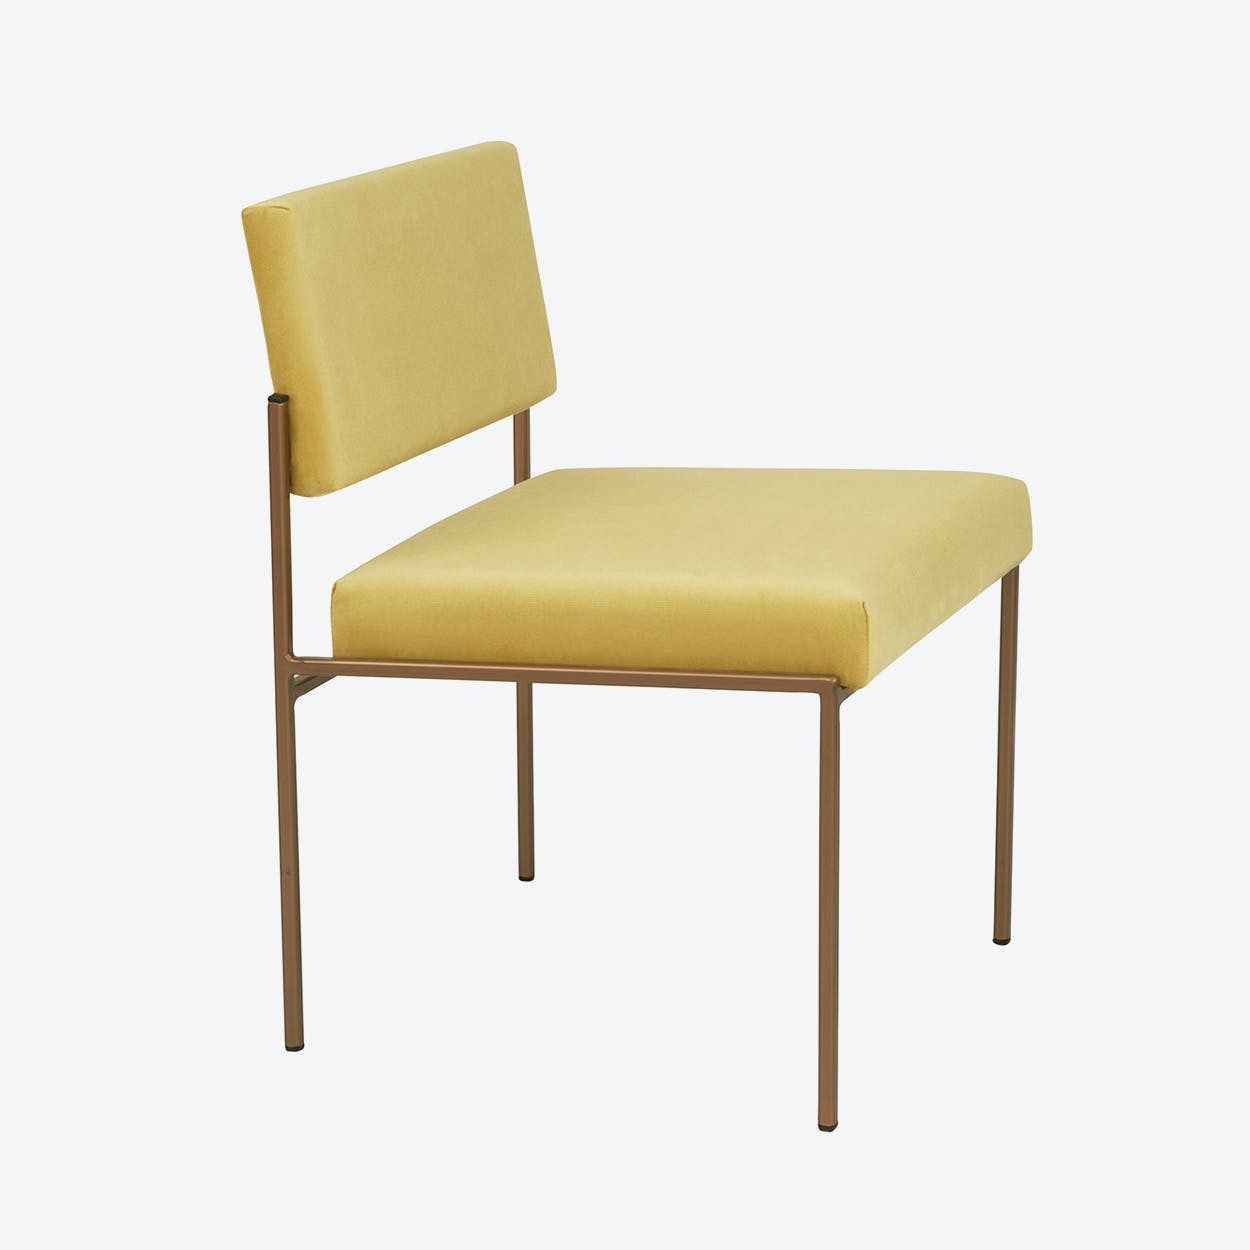 Cube Chair Copper - Velvet-Line in Lemon-Yellow